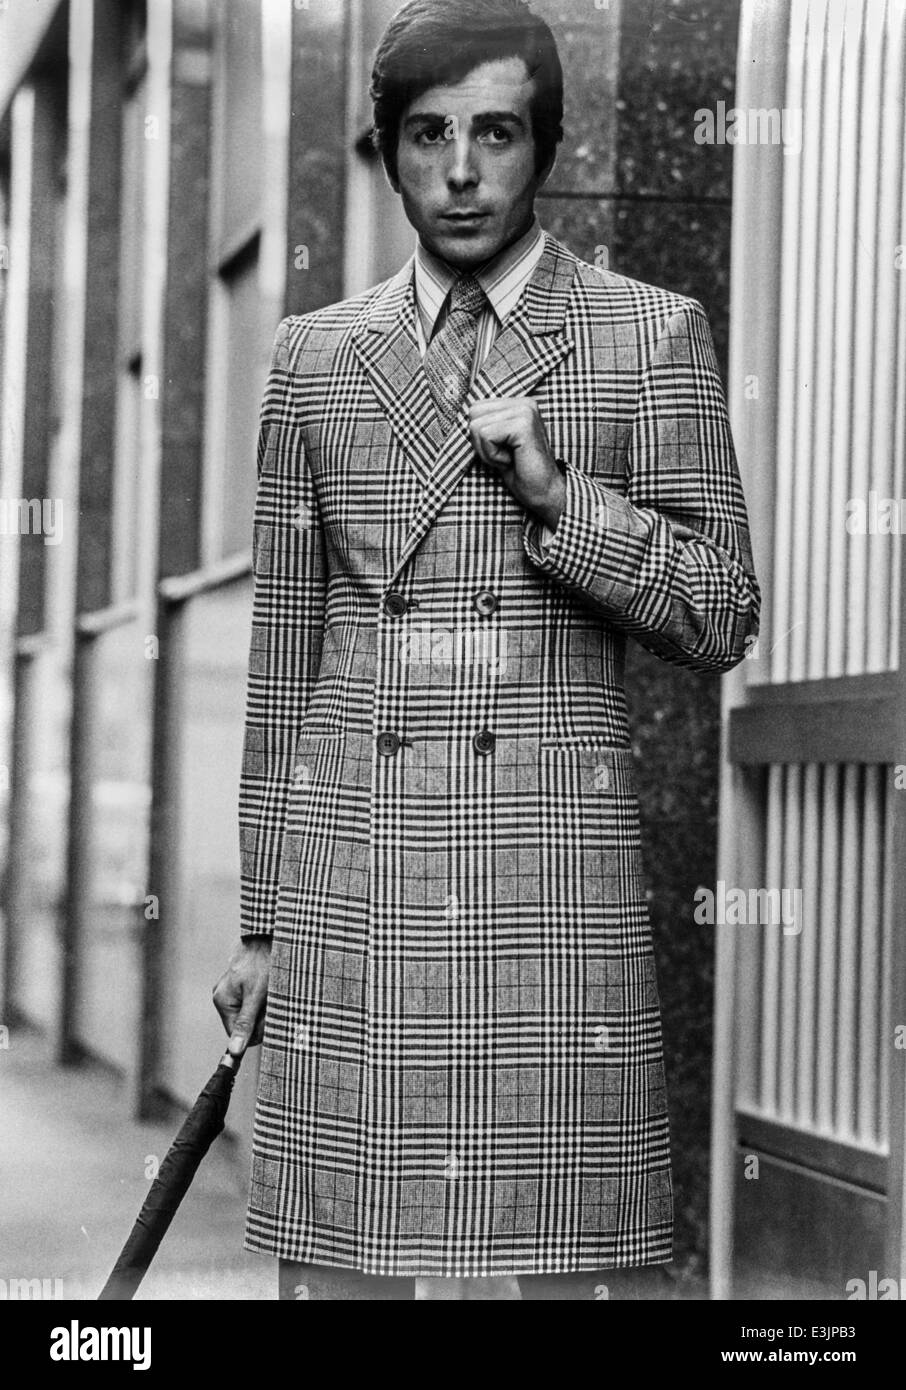 man 1970's style,model during a photo shoot - Stock Image